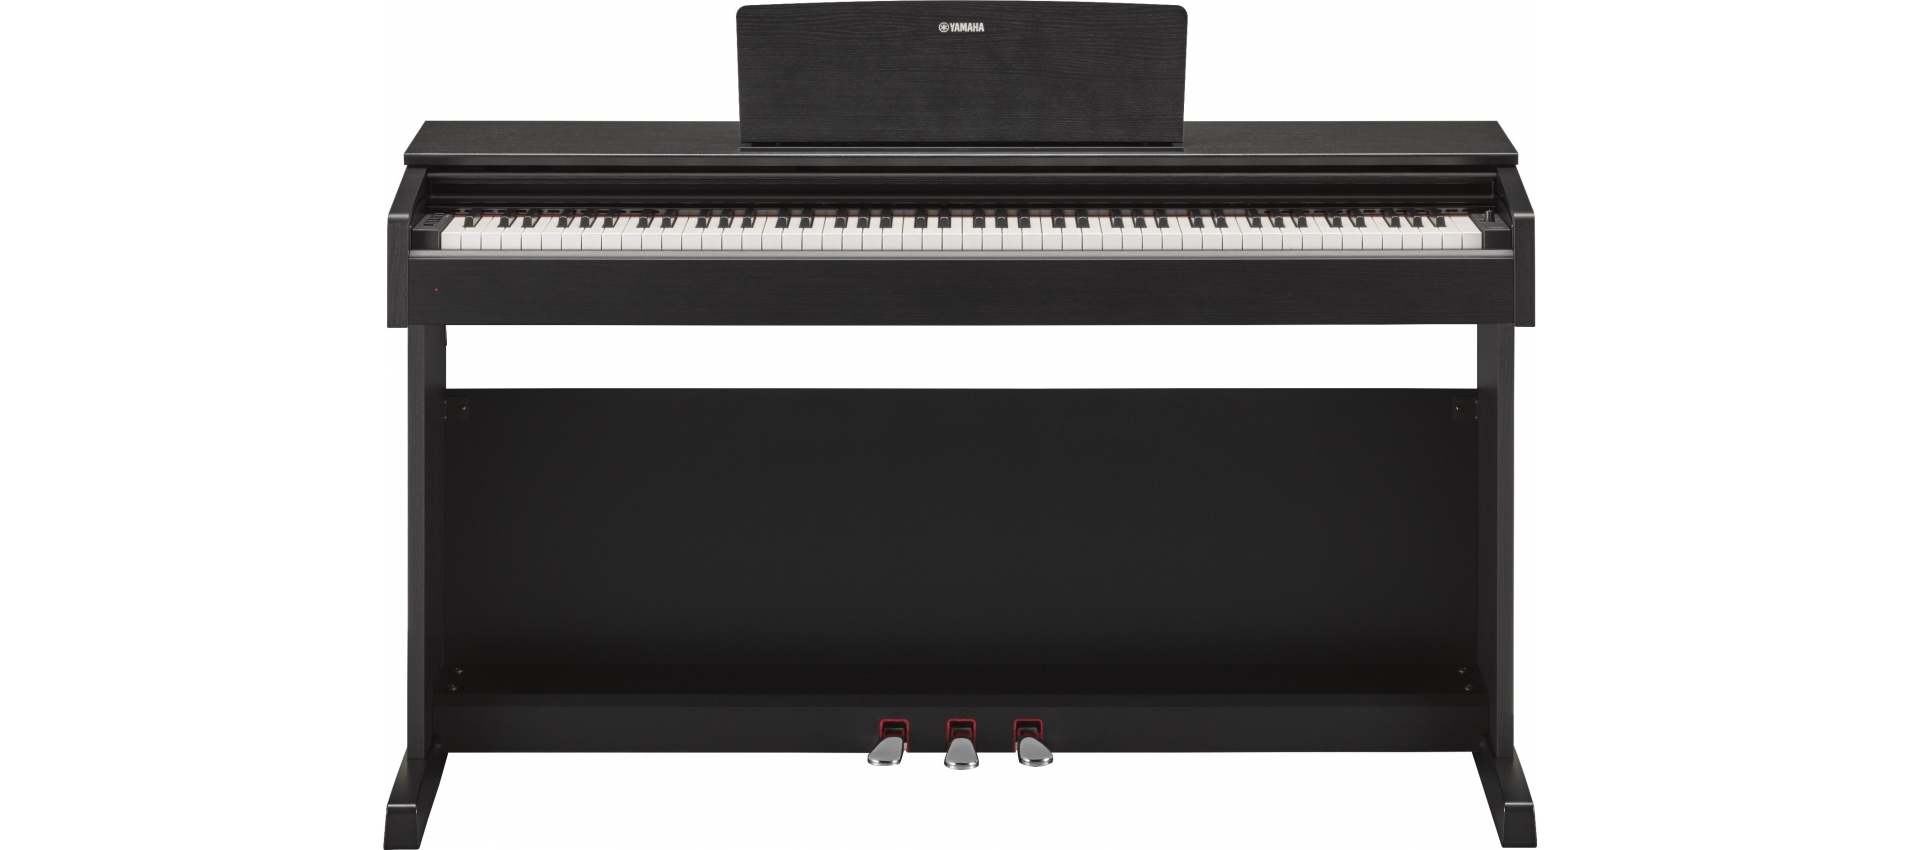 yamaha ydp 143b digital piano black arius series luckymusic. Black Bedroom Furniture Sets. Home Design Ideas